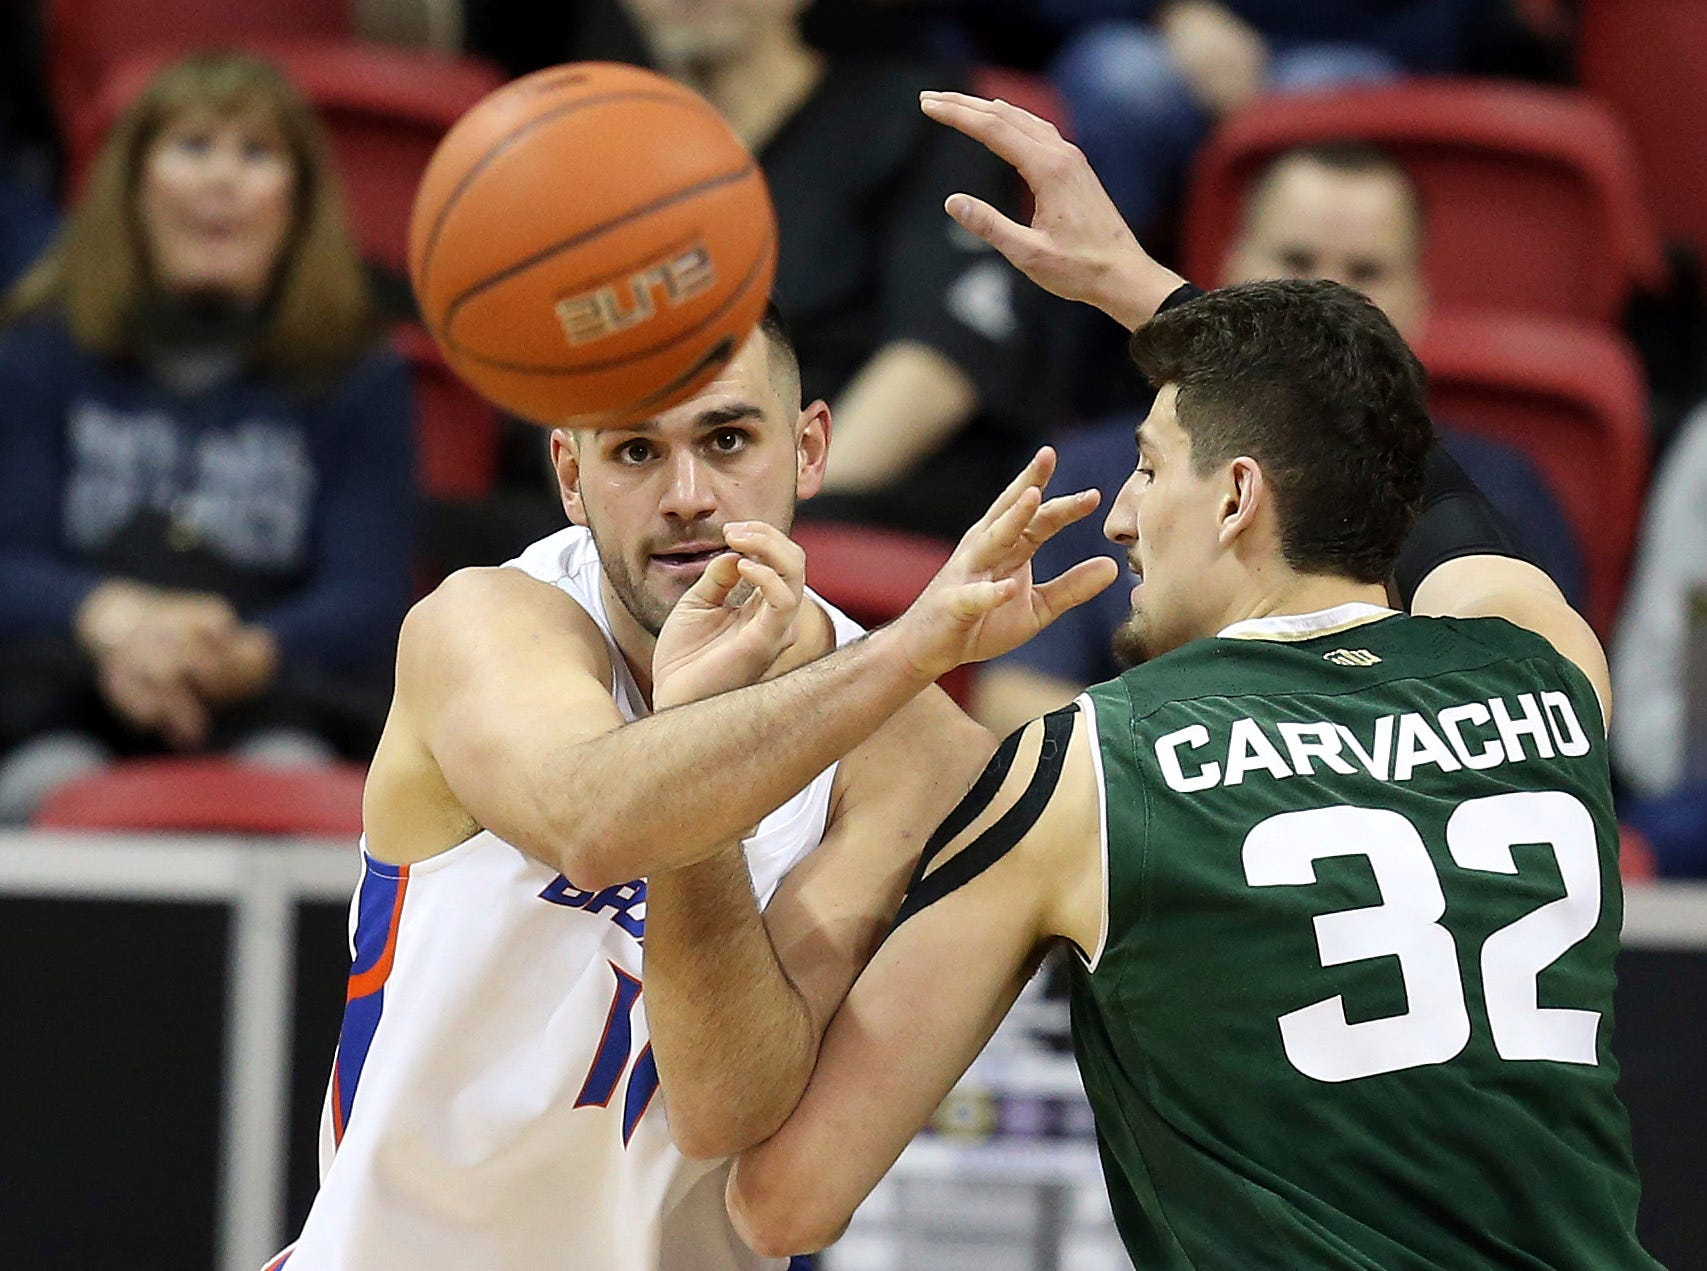 Colorado State's Nico Carvacho (32) defends as Boise State's Zach Haney (11) passes during the second half of an NCAA college basketball game in the Mountain West Conference tournament Wednesday, March 13, 2019, in Las Vegas.